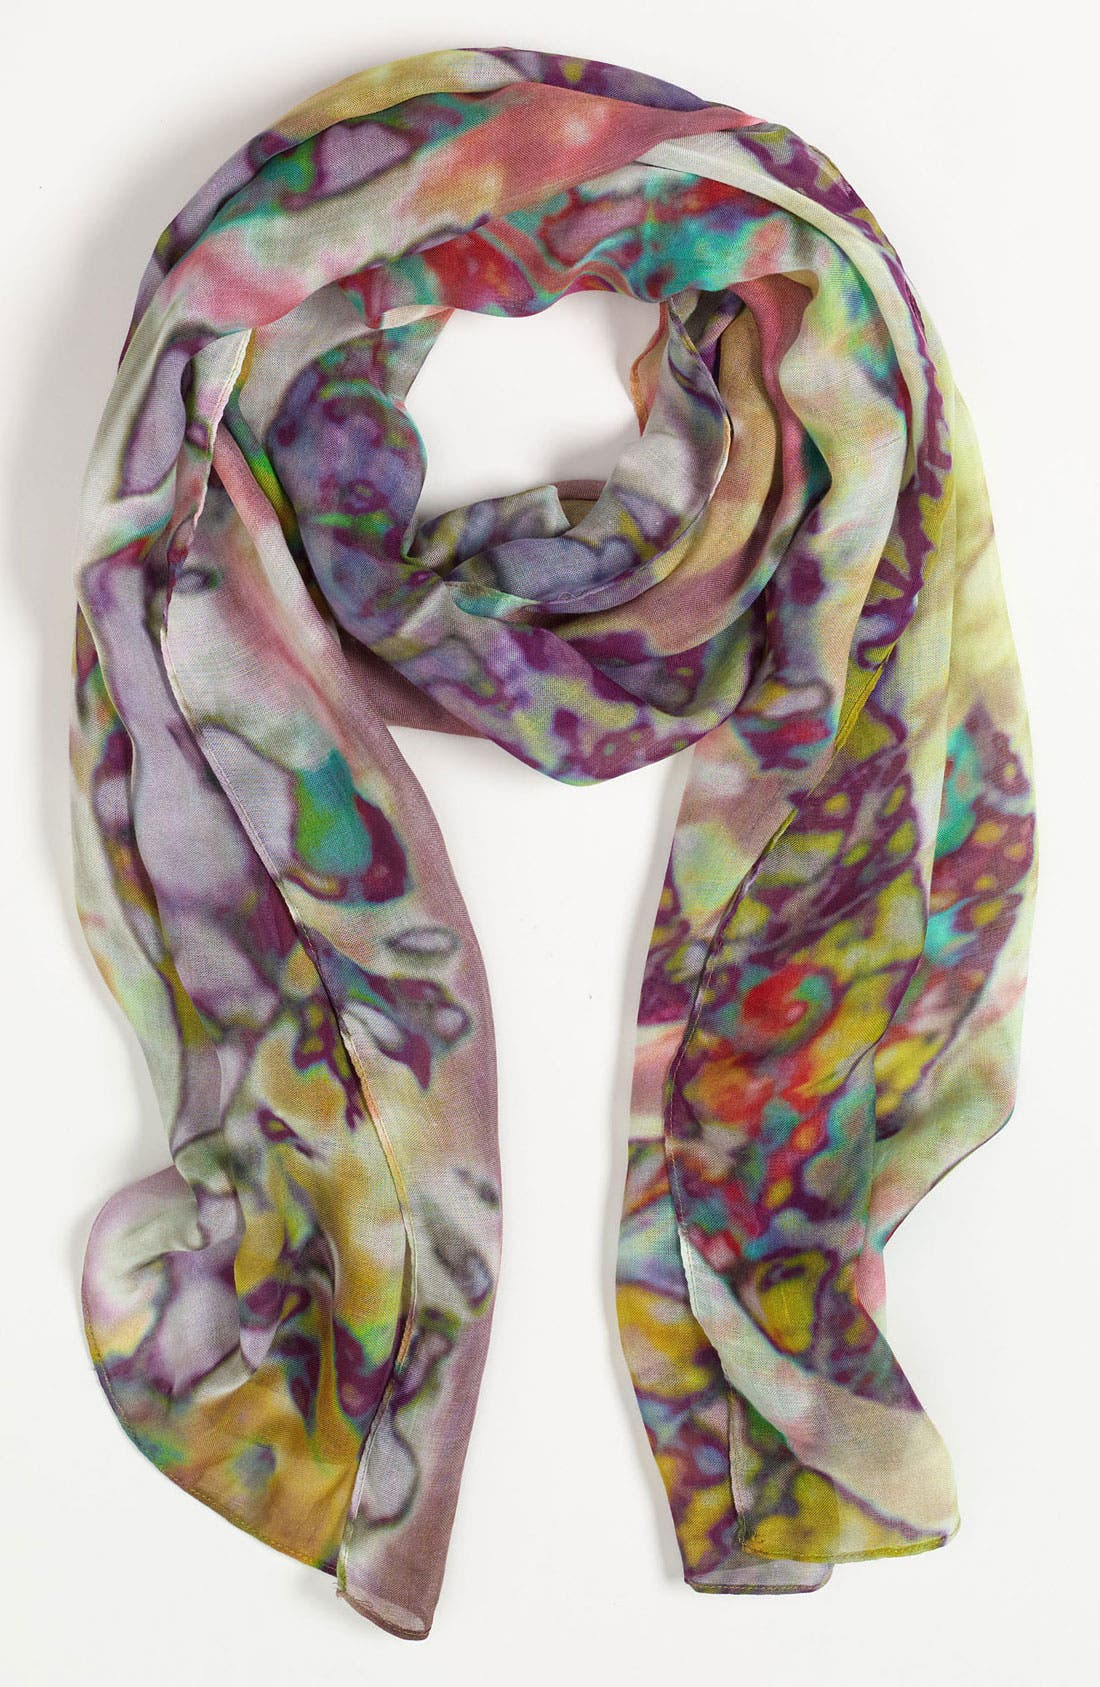 Alternate Image 1 Selected - Front Row Society Intertwined Scarf